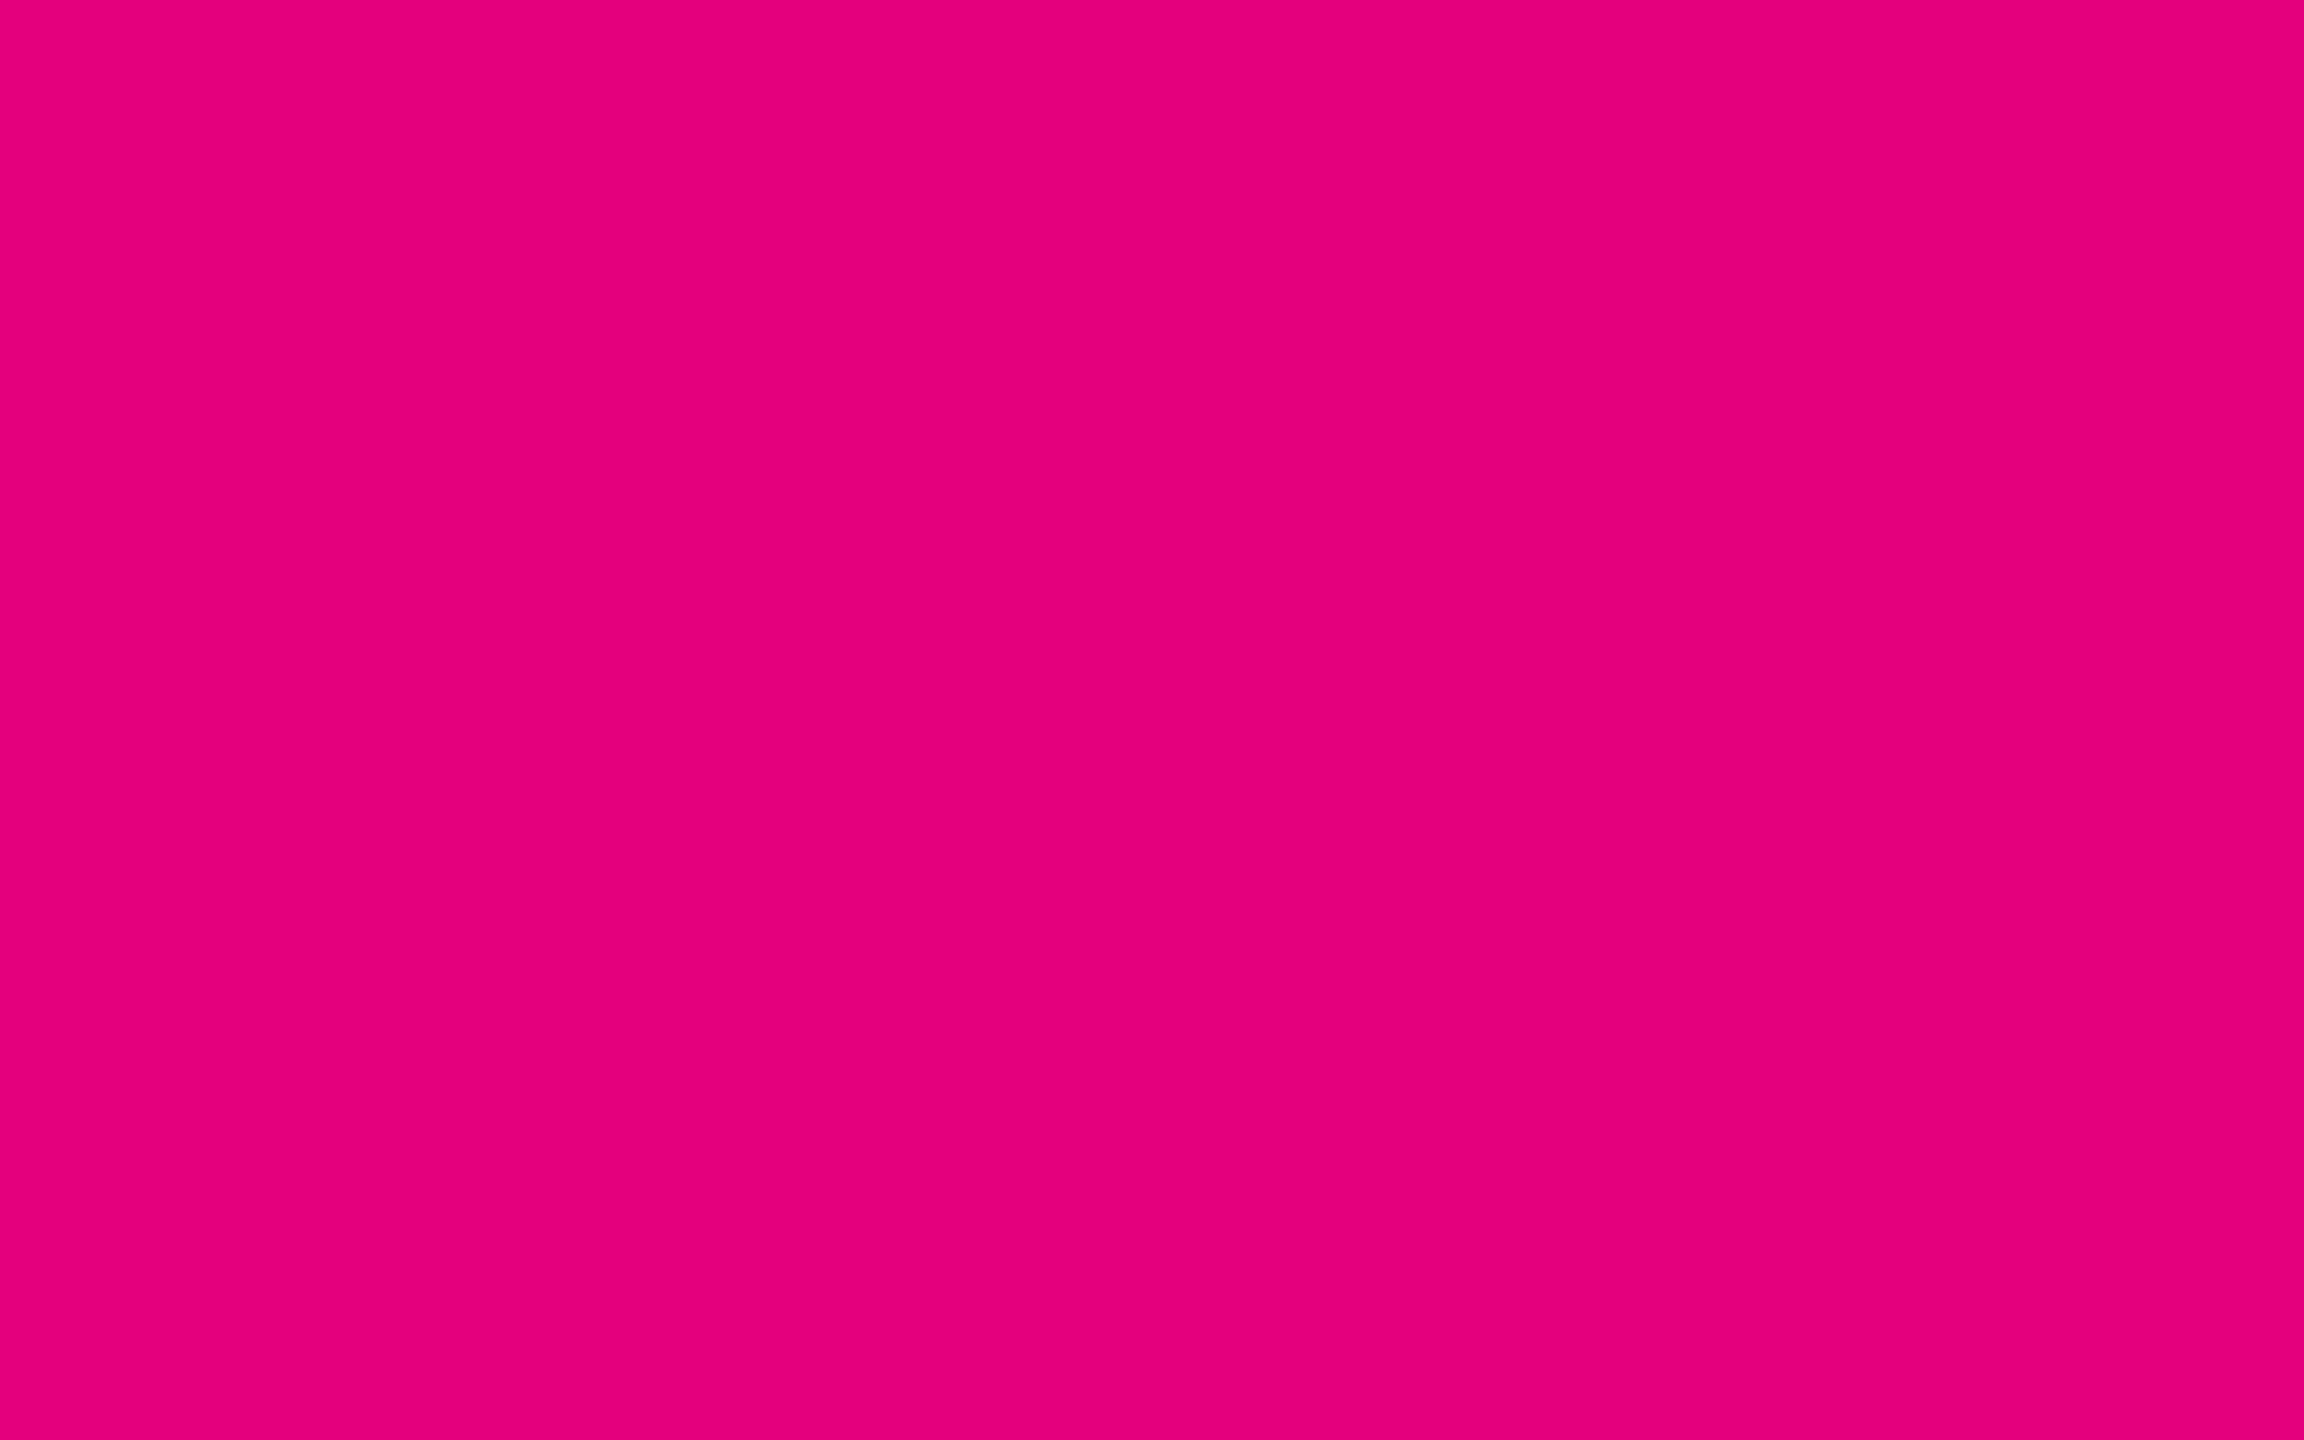 2304x1440 Mexican Pink Solid Color Background